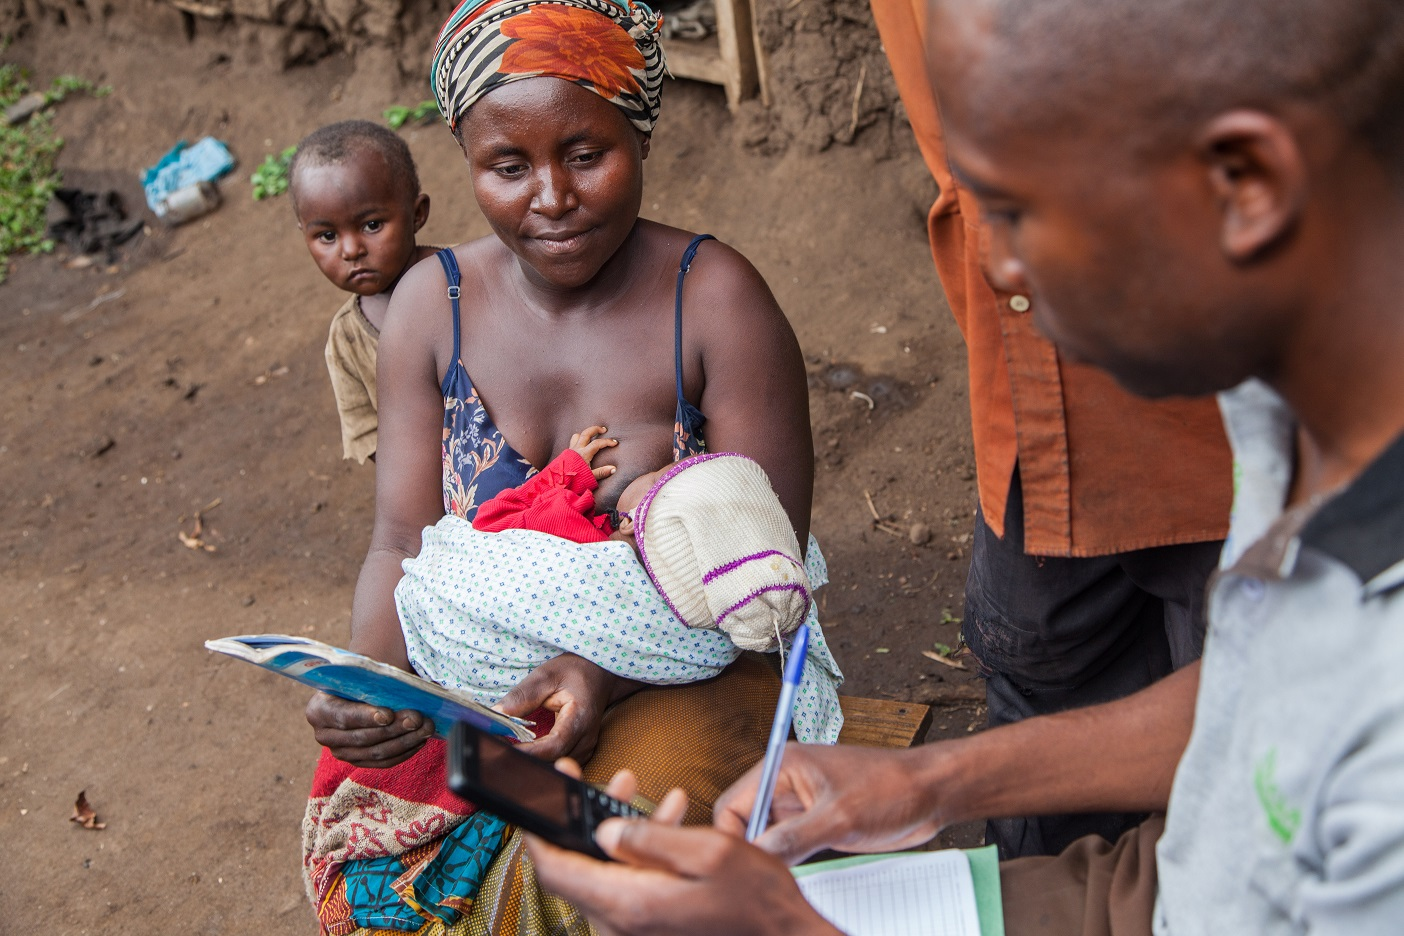 A social worker records the infant's health findings